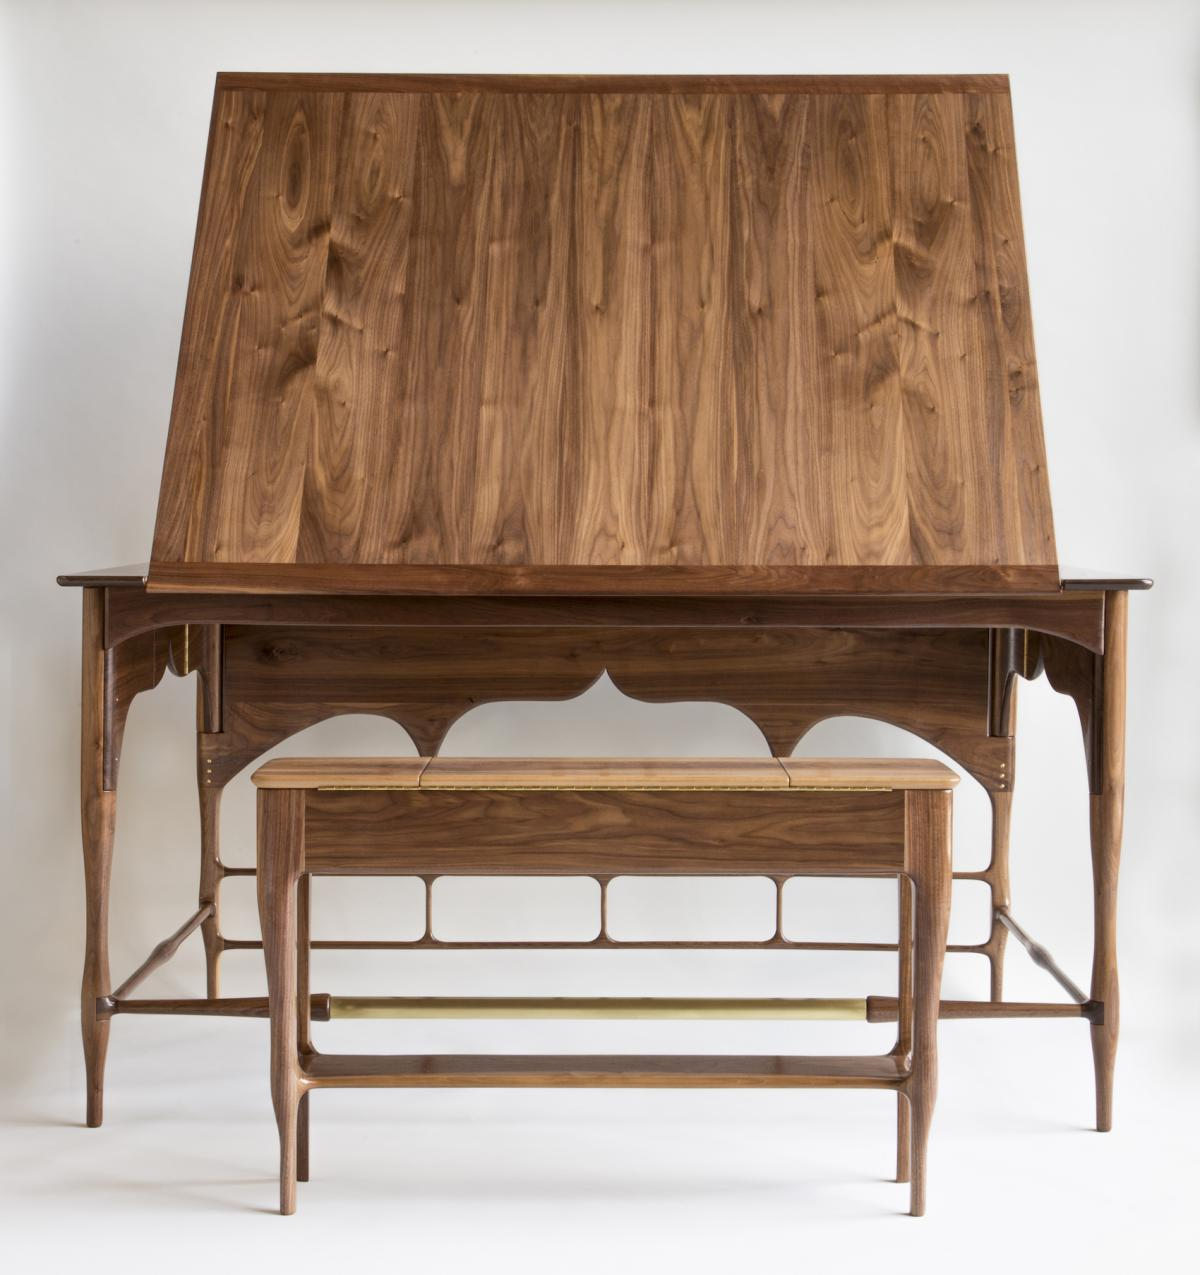 Drafting Table by Heather Dawson